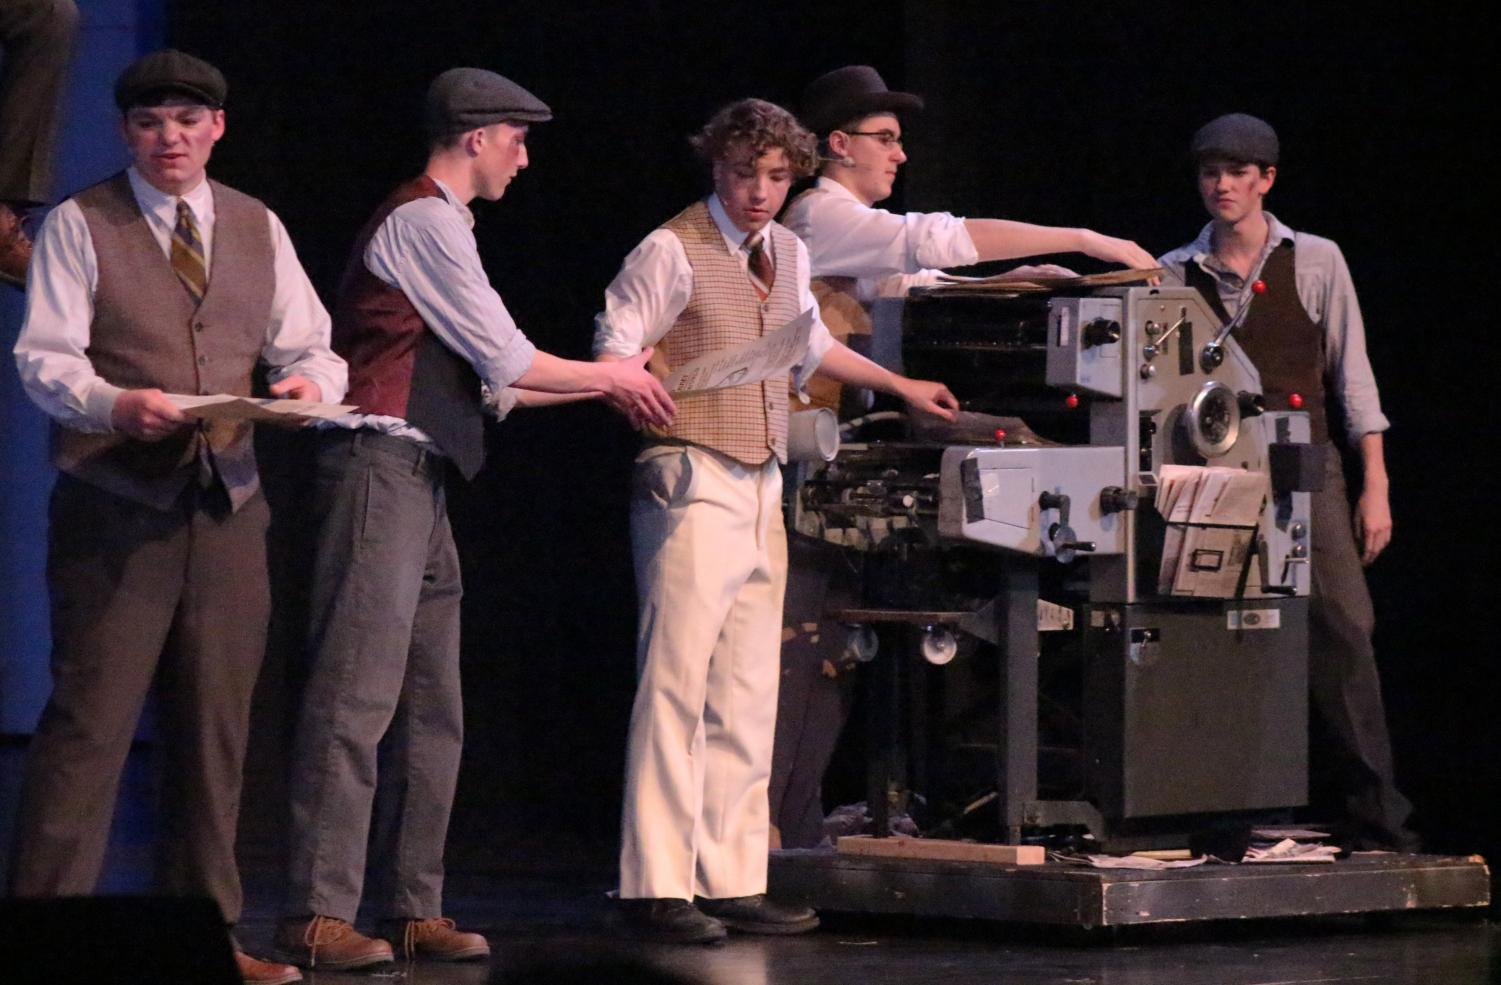 MAKING+PAPES.+Newsies+come+together+to+print+their+own+newspapers.